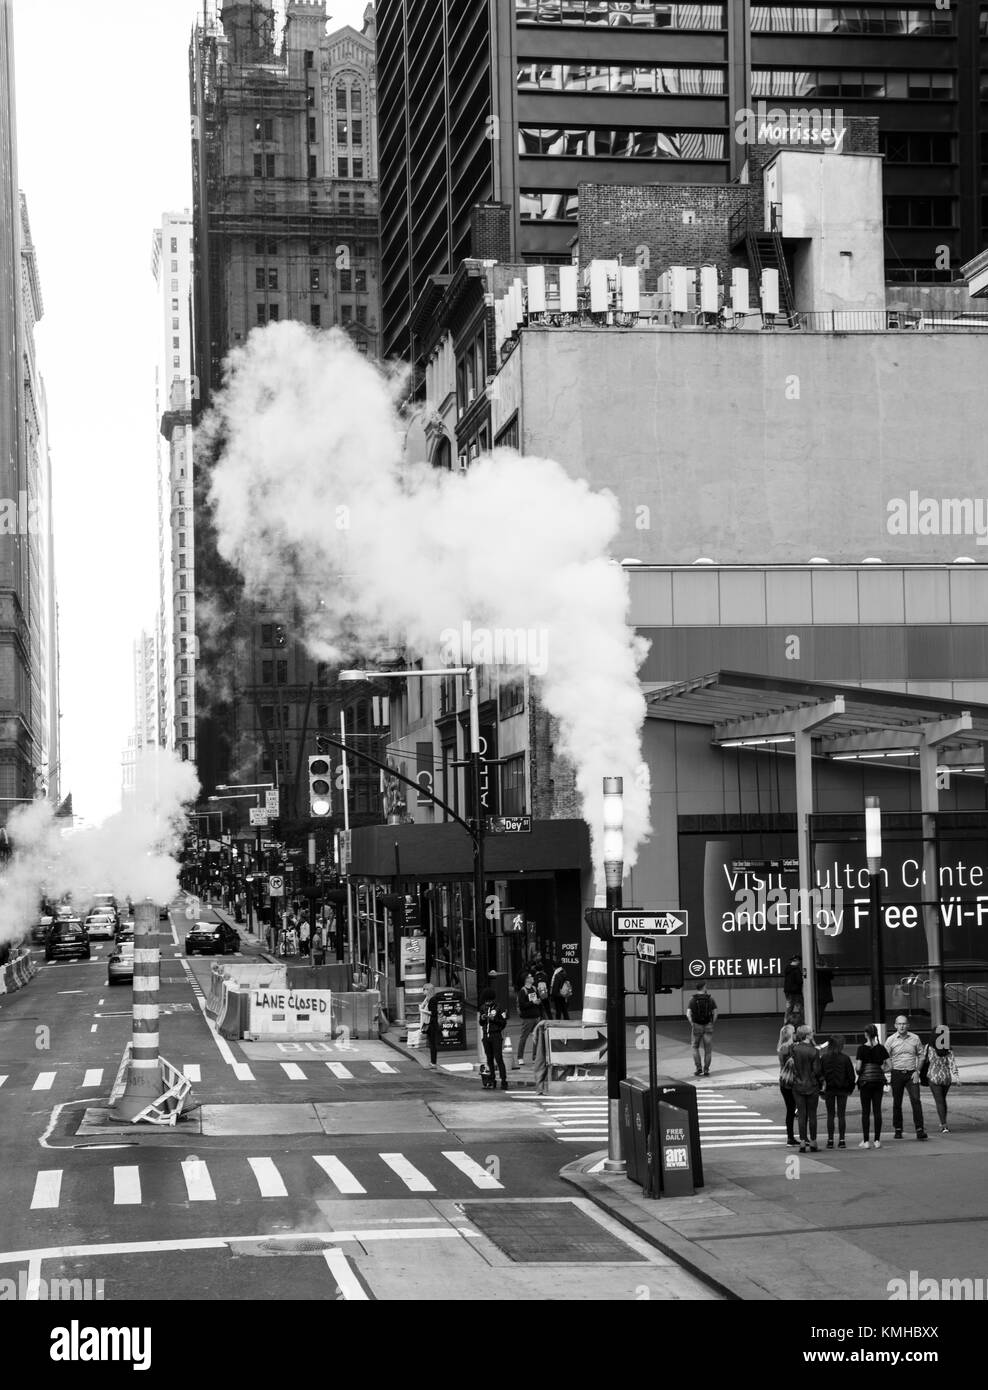 Black and White image of Steam from vents in Manhattan New York - Stock Image